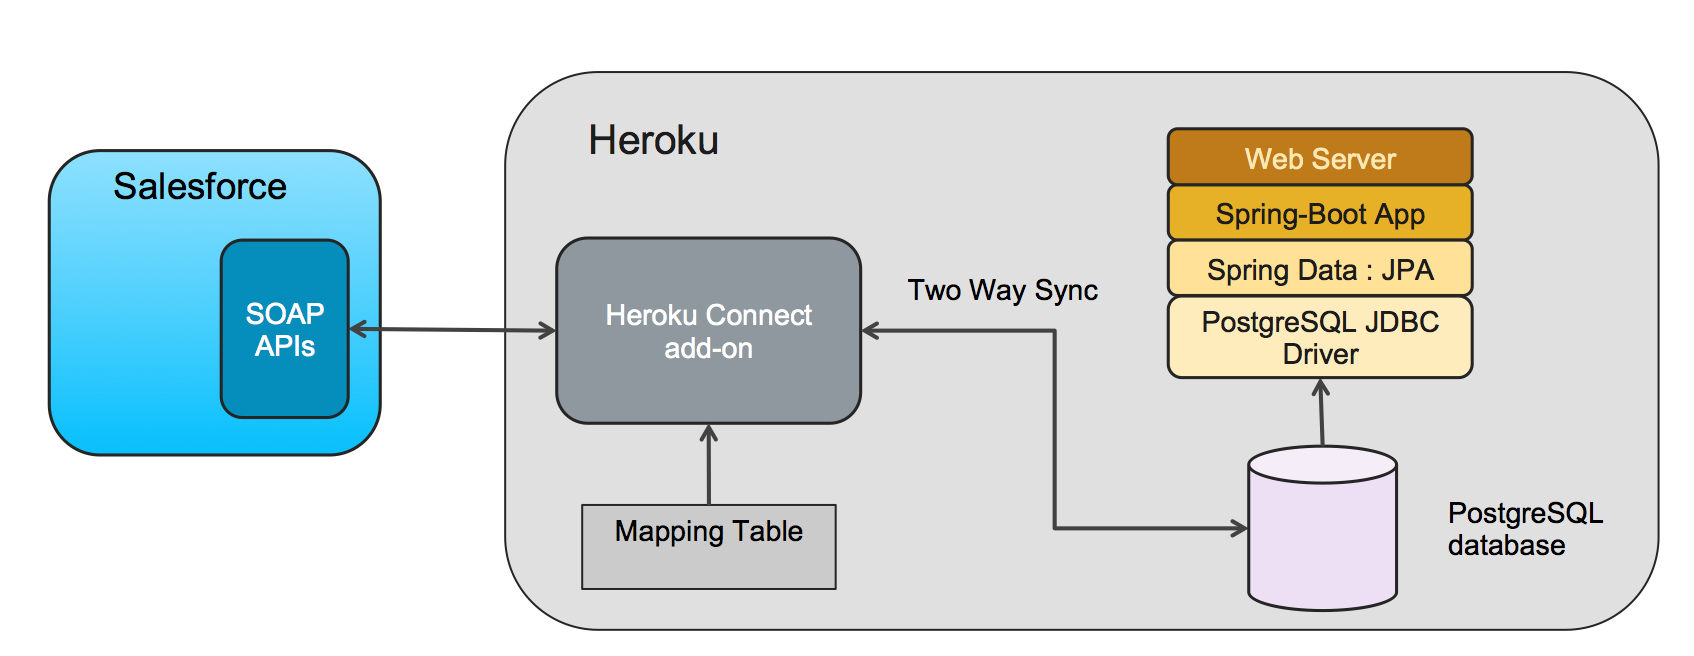 ../../_images/heroku-connect-spring-boot-jpa-flow.png